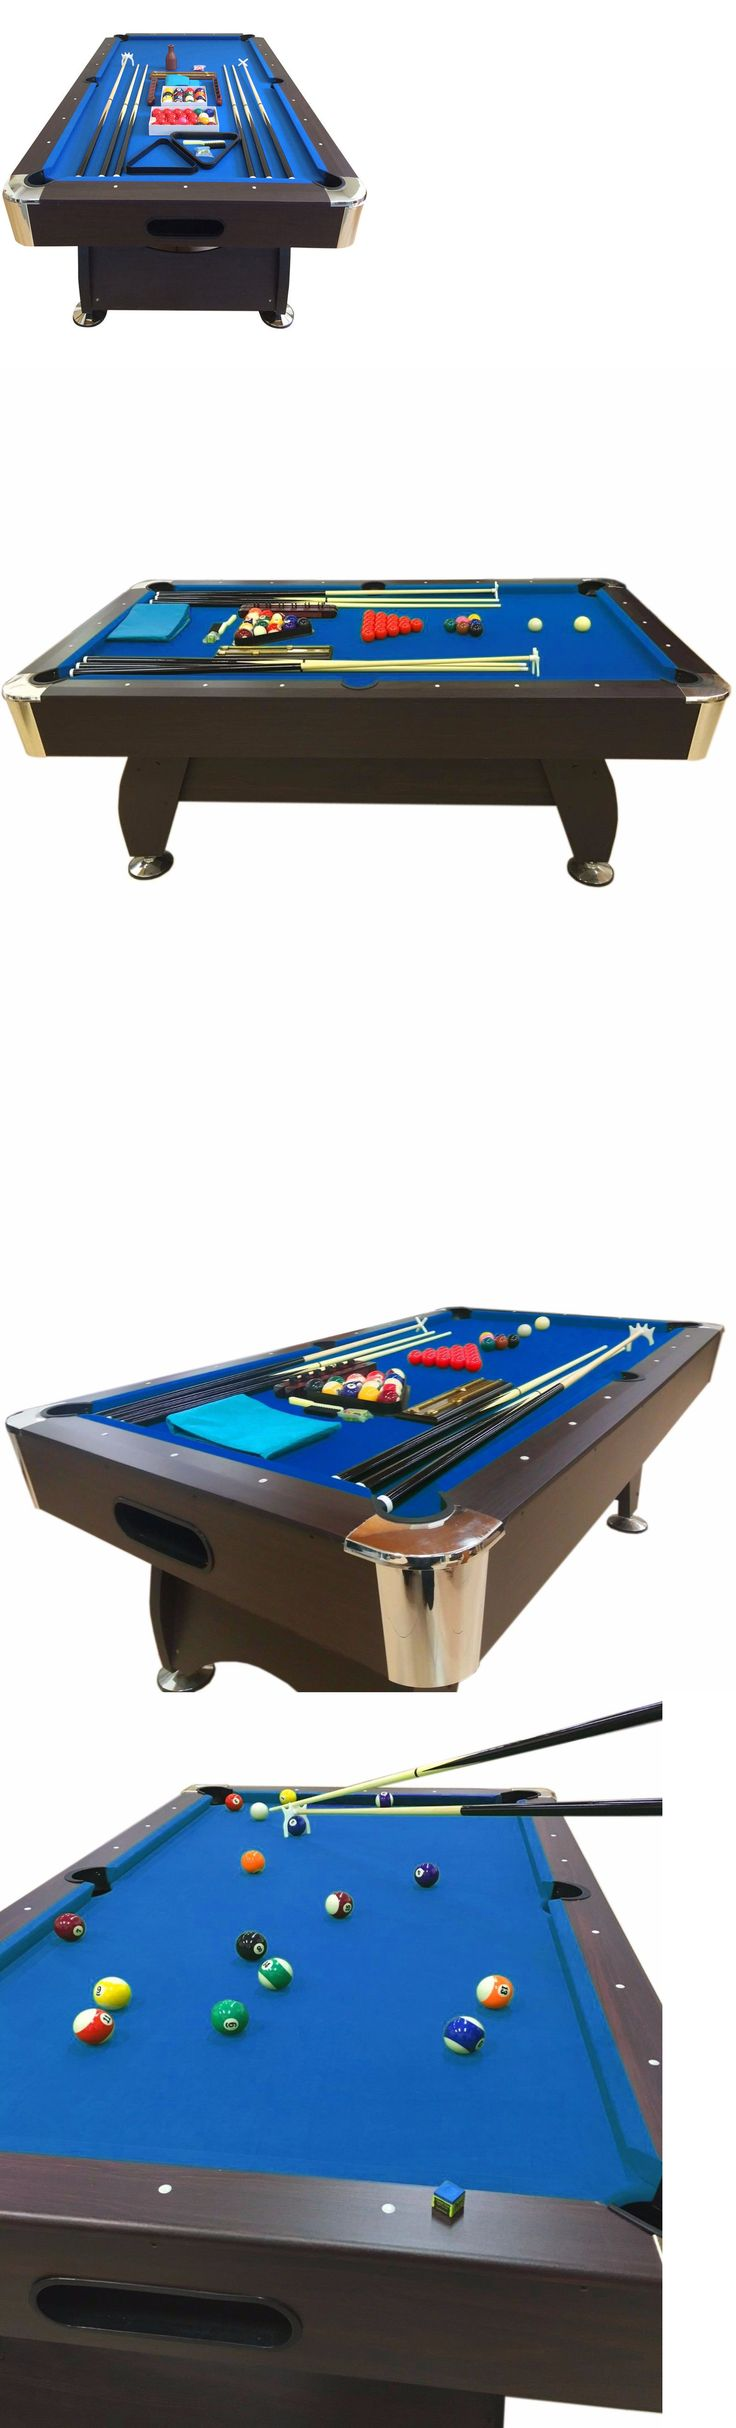 Tables 21213: 7 Feet Billiard Pool Table Snooker Full Set Accessories Game Mod. Blue Sea -> BUY IT NOW ONLY: $949.05 on eBay!